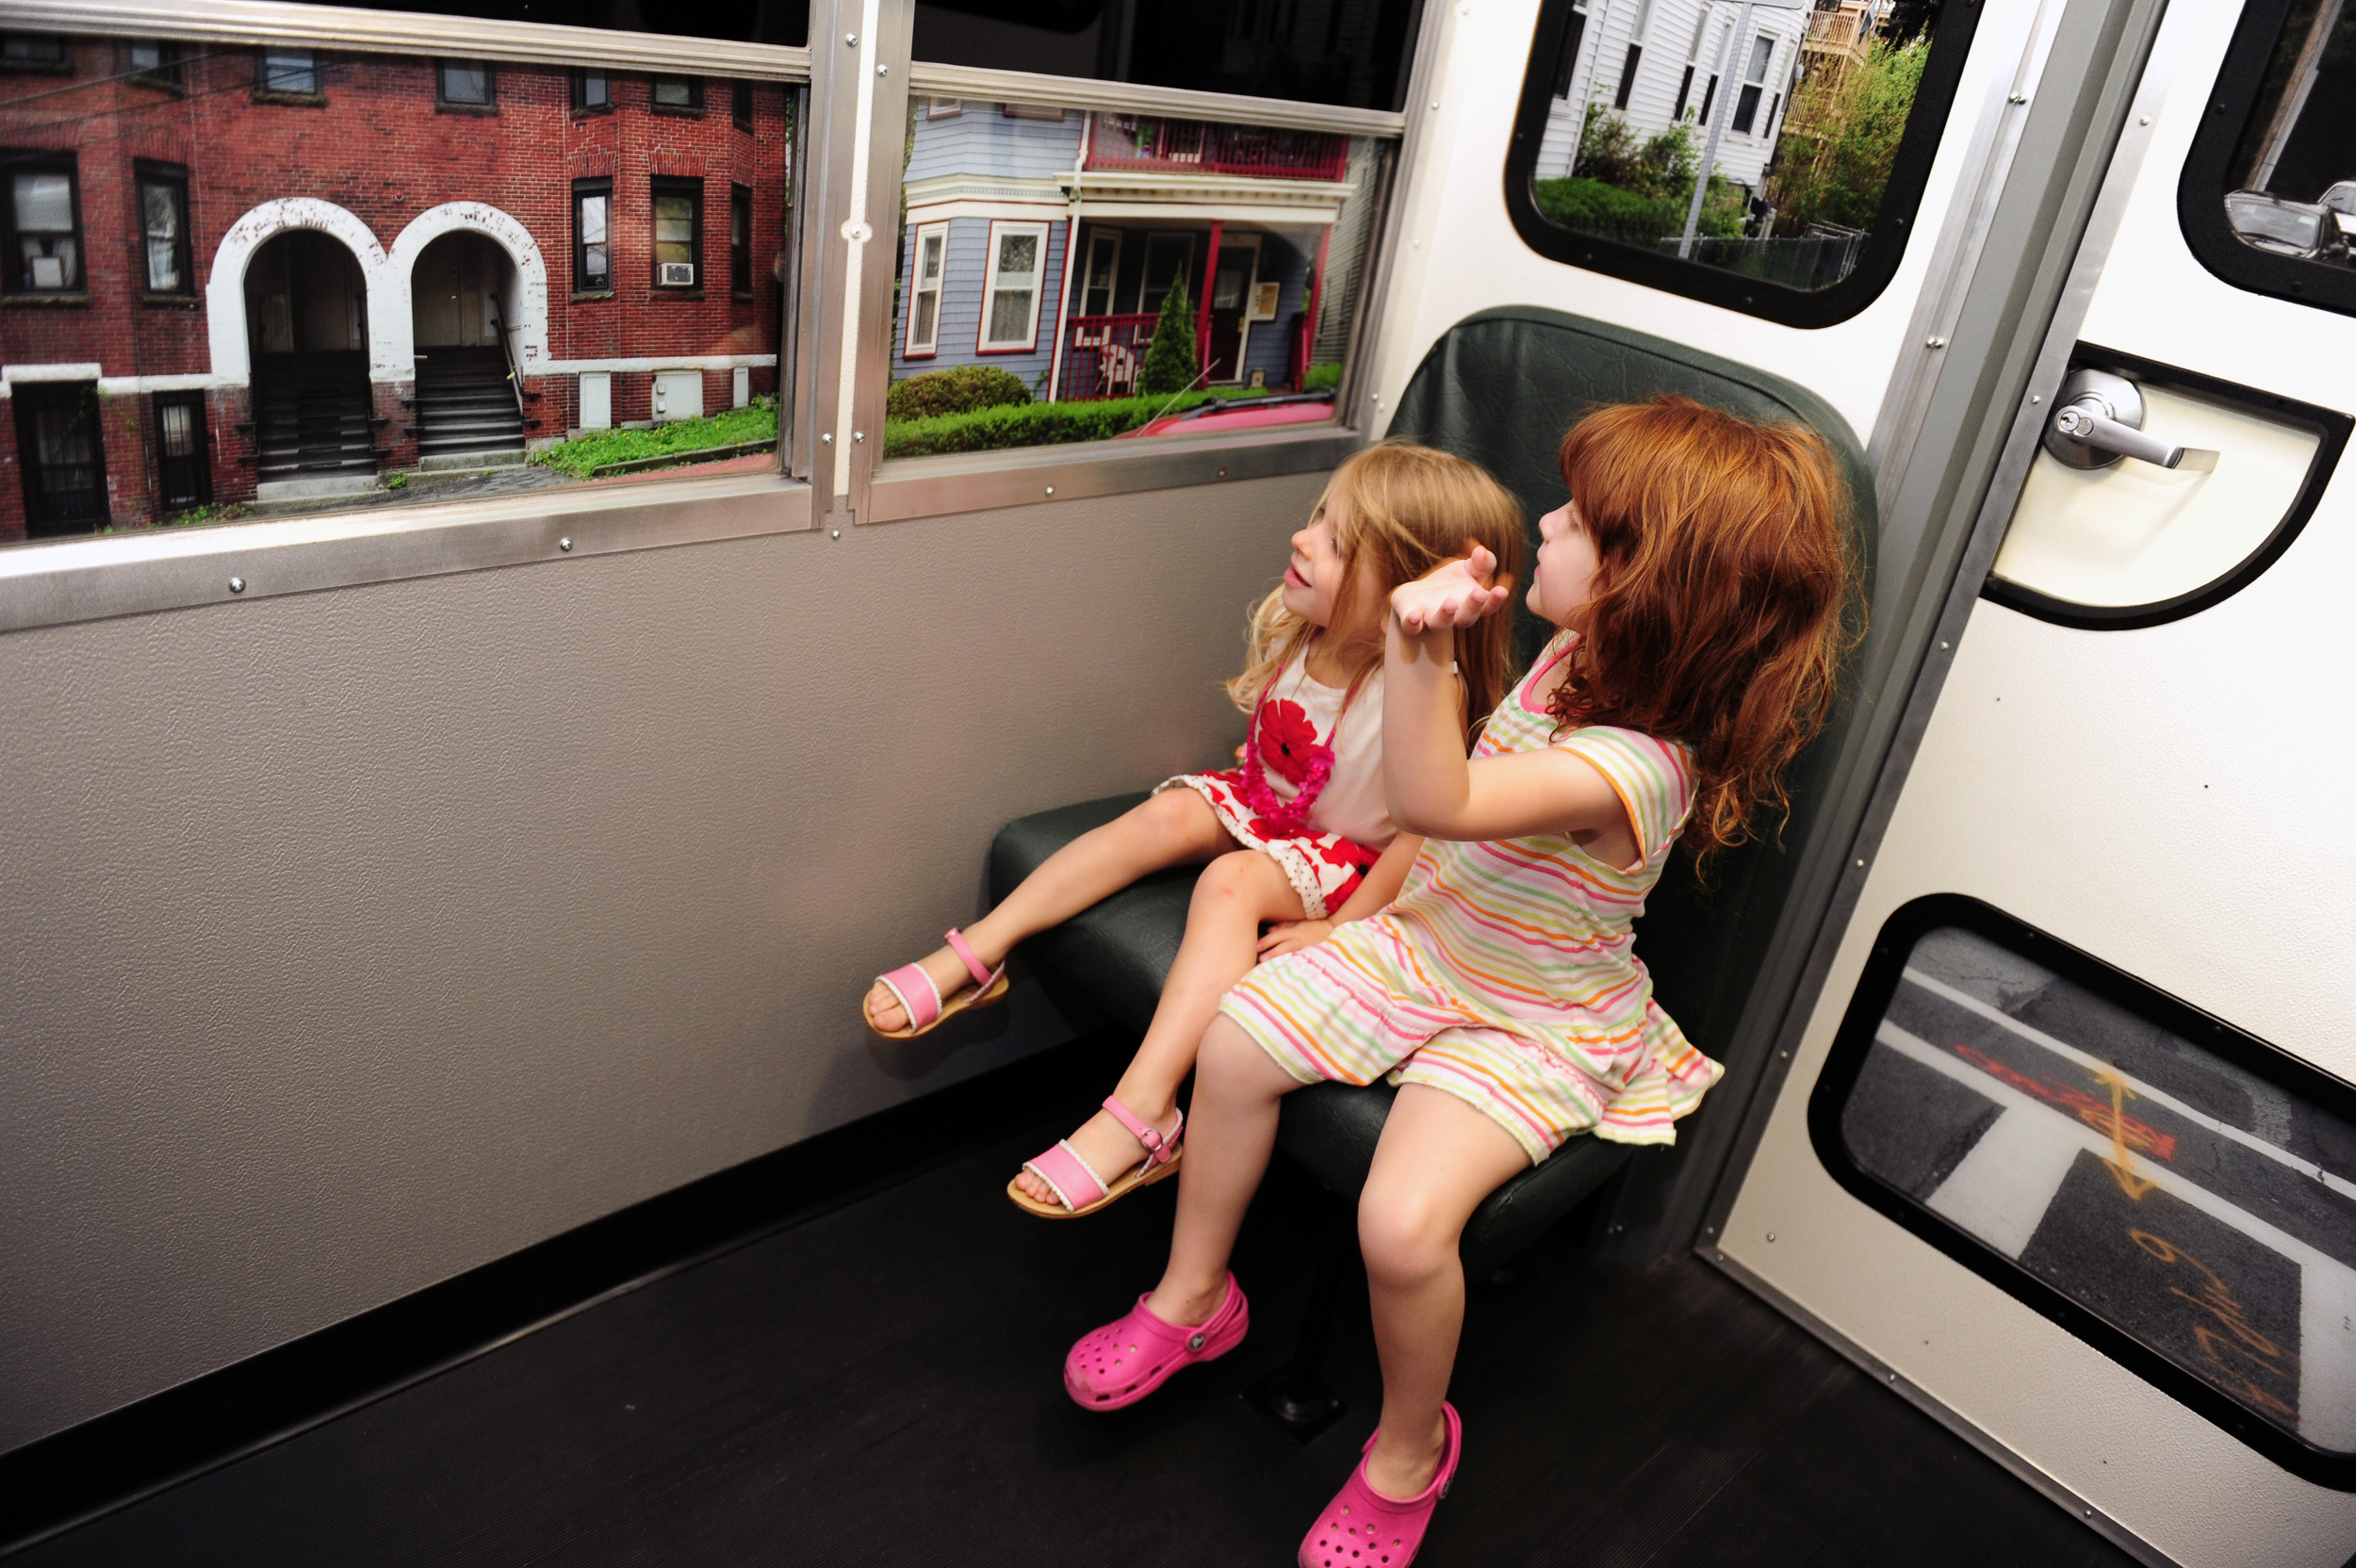 phopro-int-girls in bus-300ppi-14x9.jpg